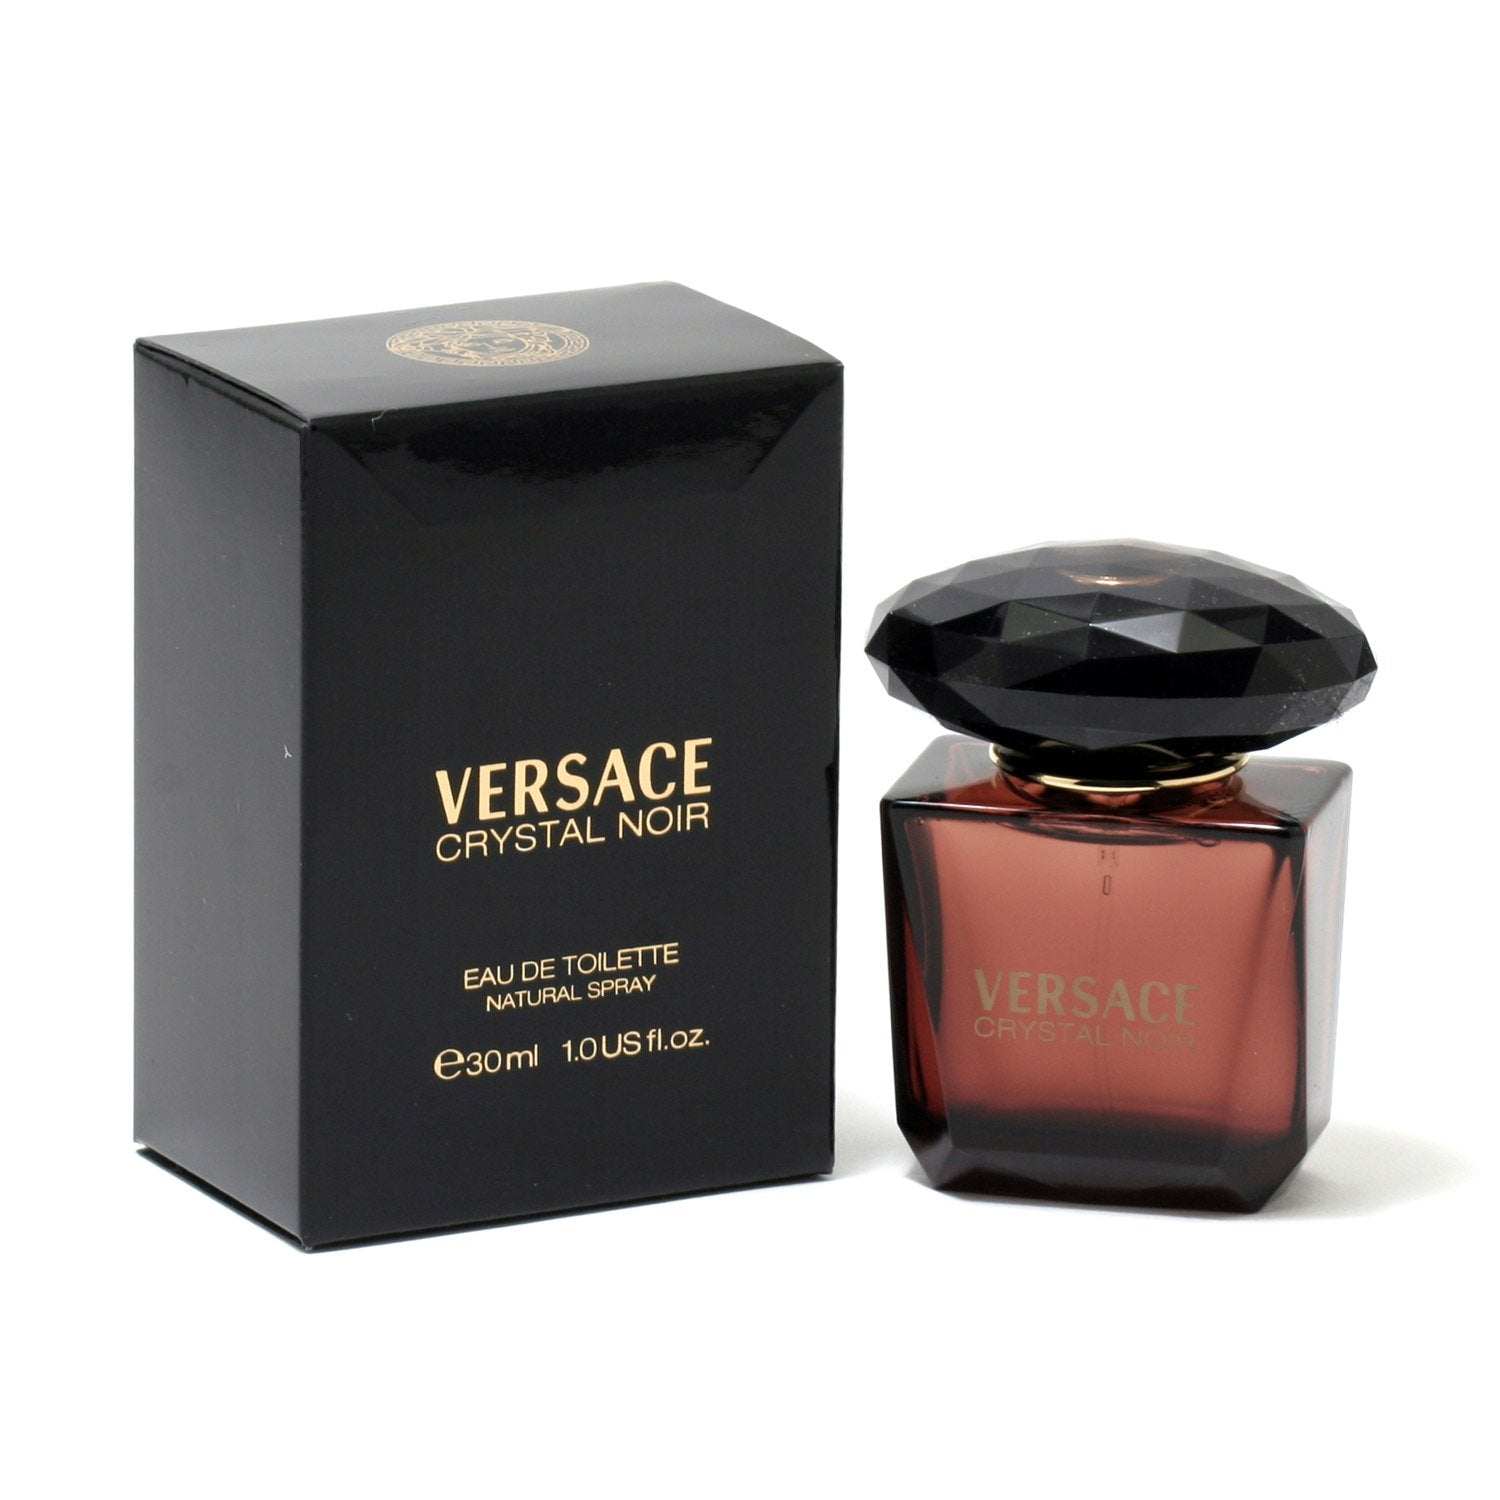 Perfume - VERSACE CRYSTAL NOIR FOR WOMEN - EAU DE TOILETTE SPRAY